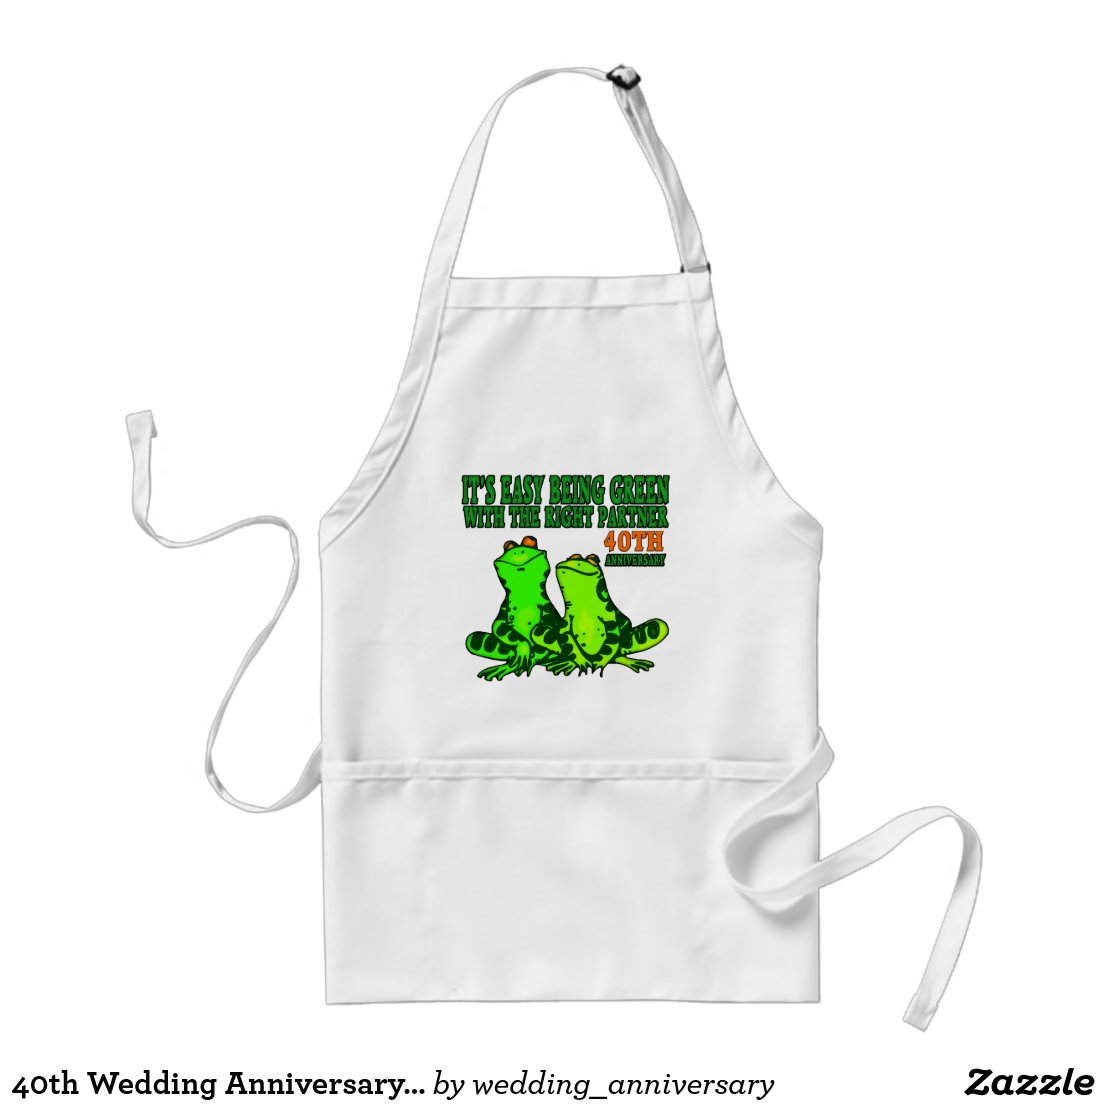 Ideas 40th Wedding Anniversary Gifts For Friends 40th wedding anniversary gifts for friends